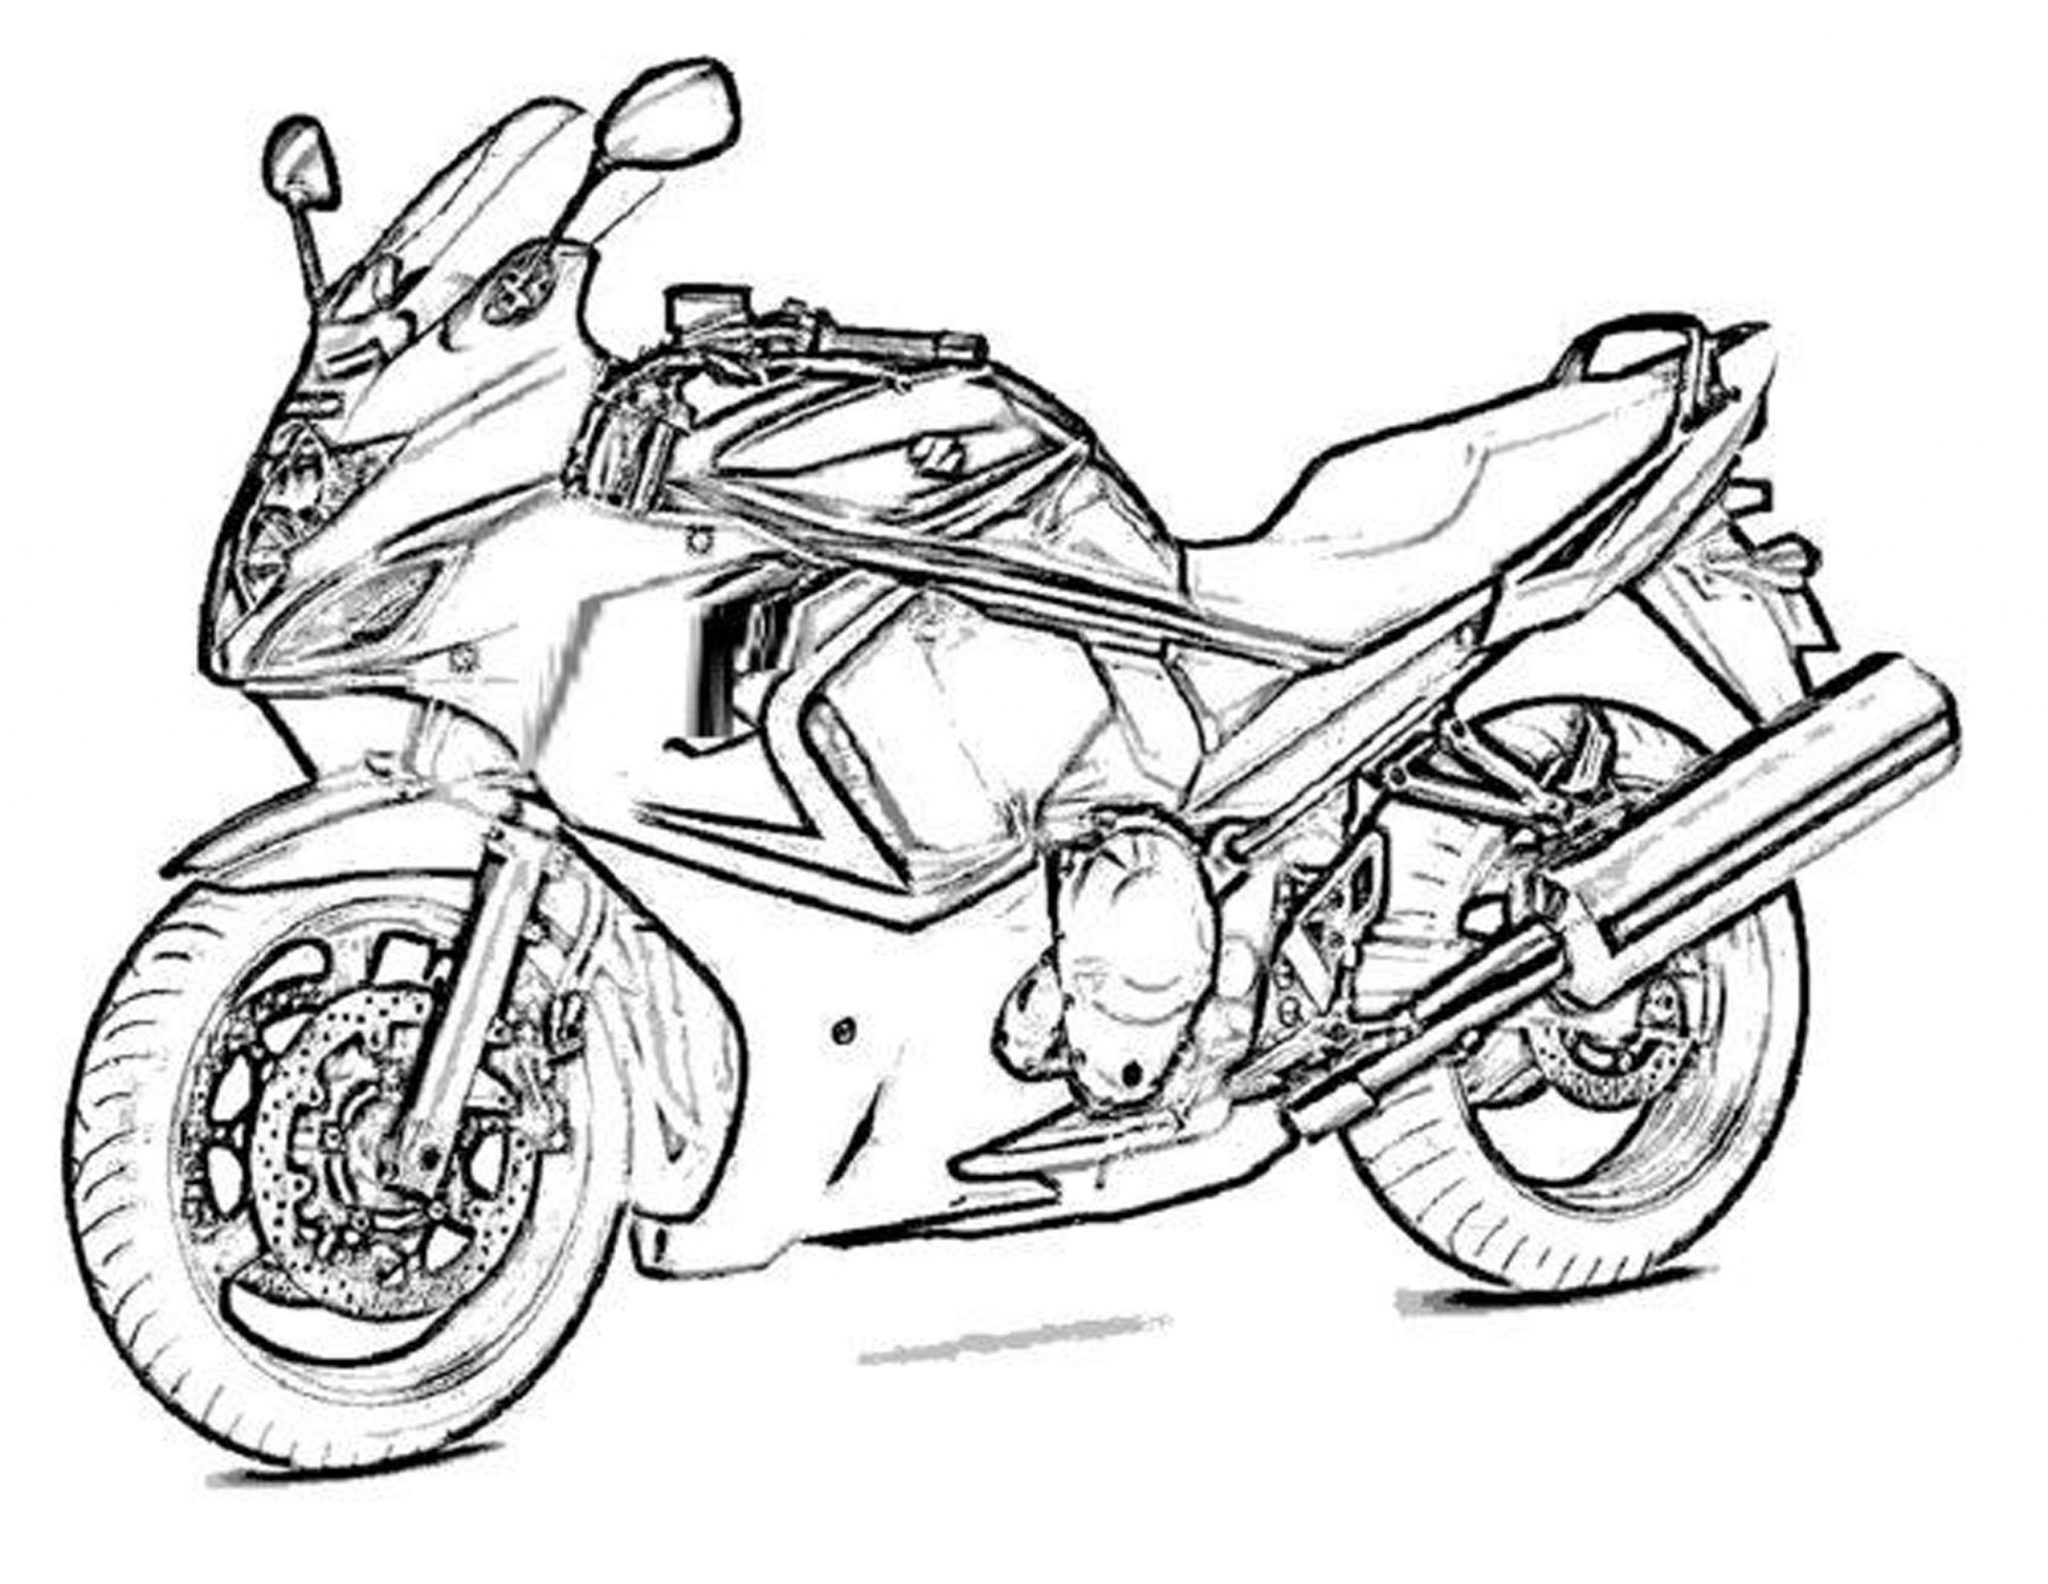 coloring sheet for boy 10 cool coloring pages for boys to print out for free sheet for coloring boy